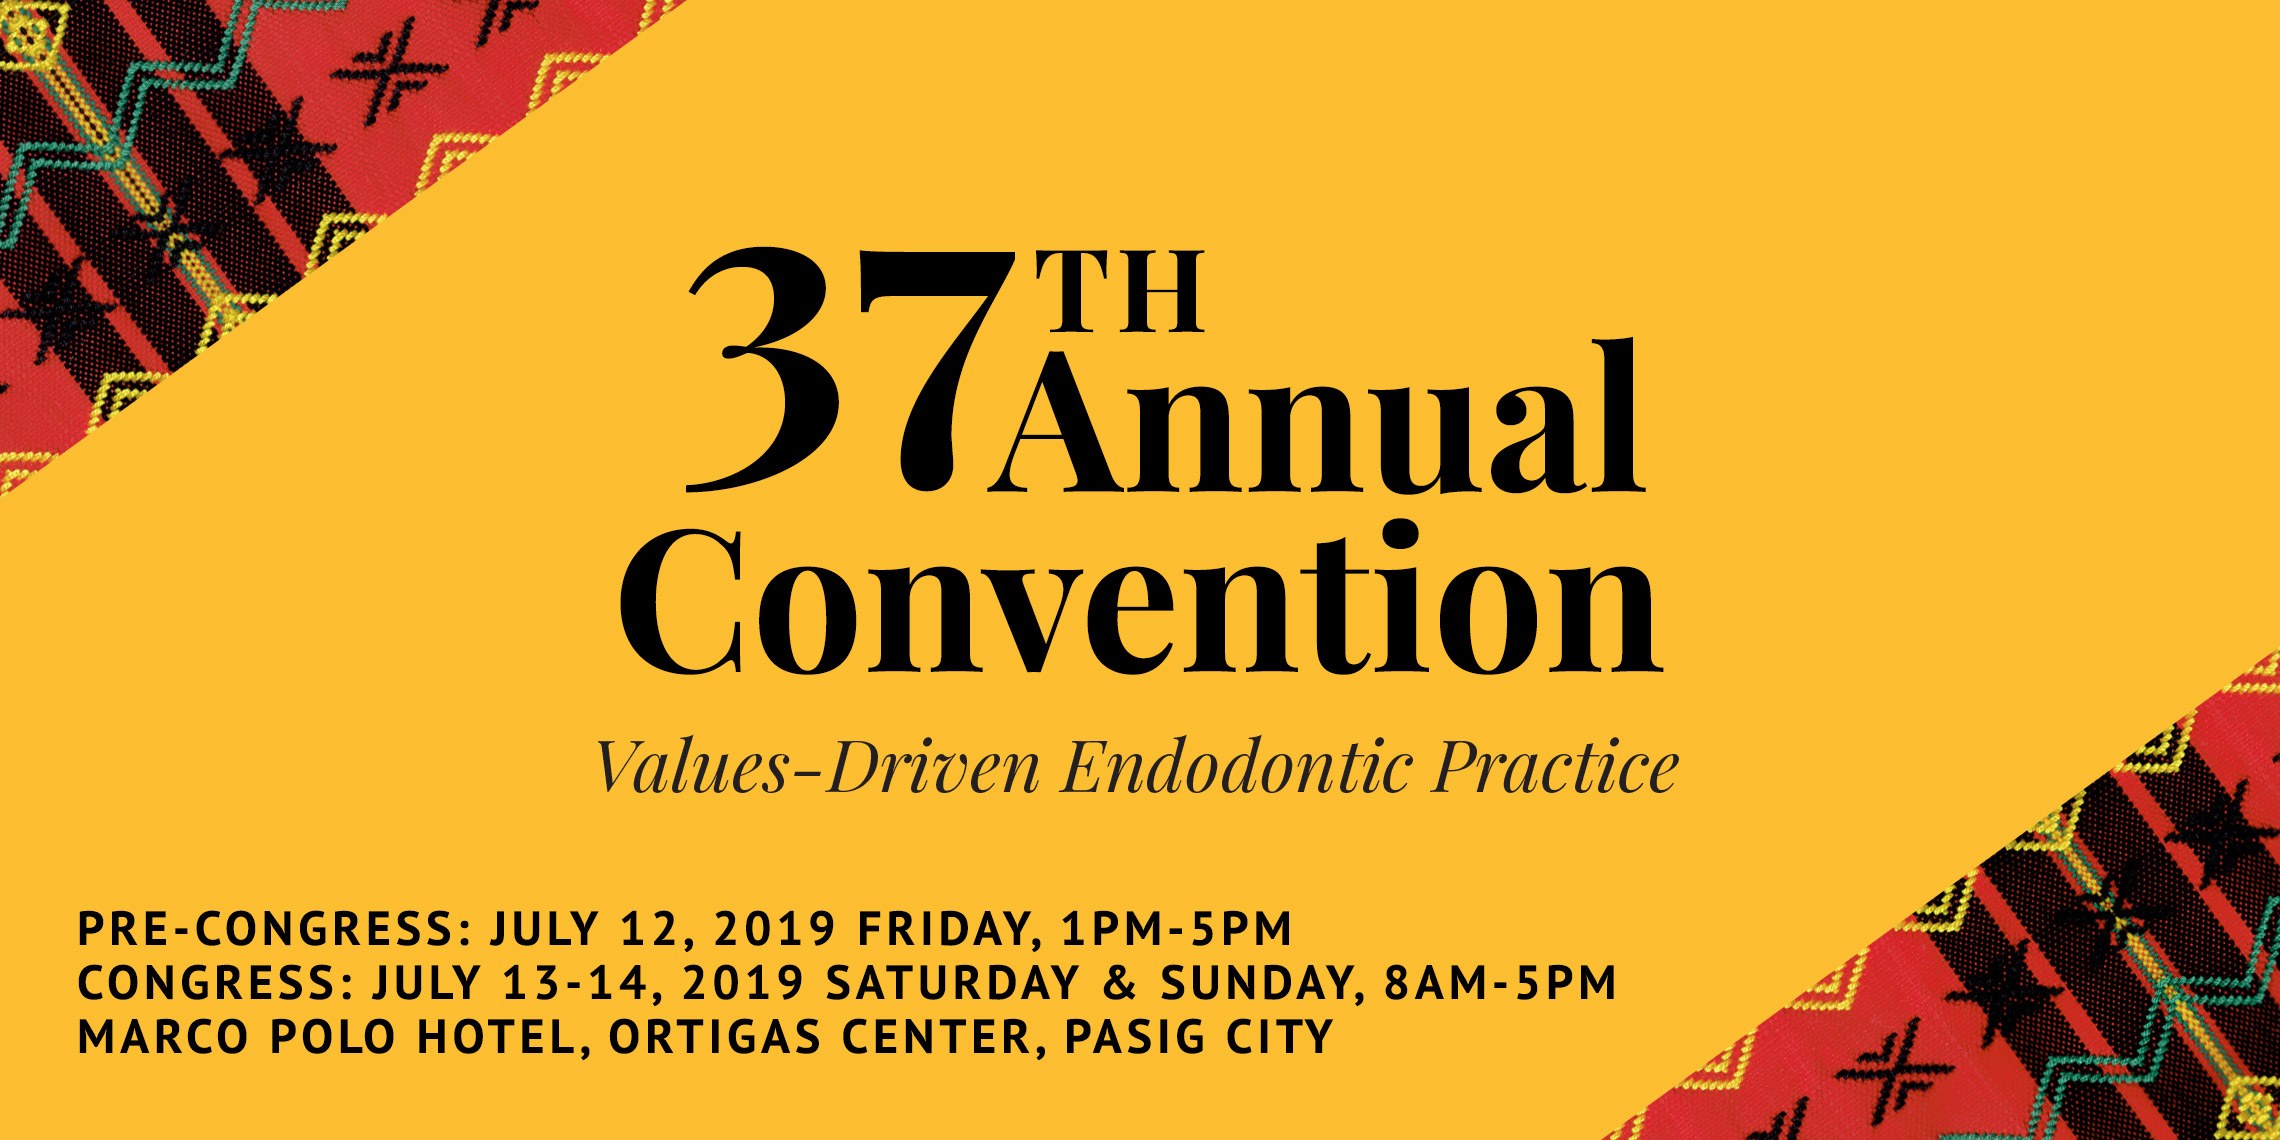 ESP 37th Annual Convention 2019 | Endodontic Society of the Philippines